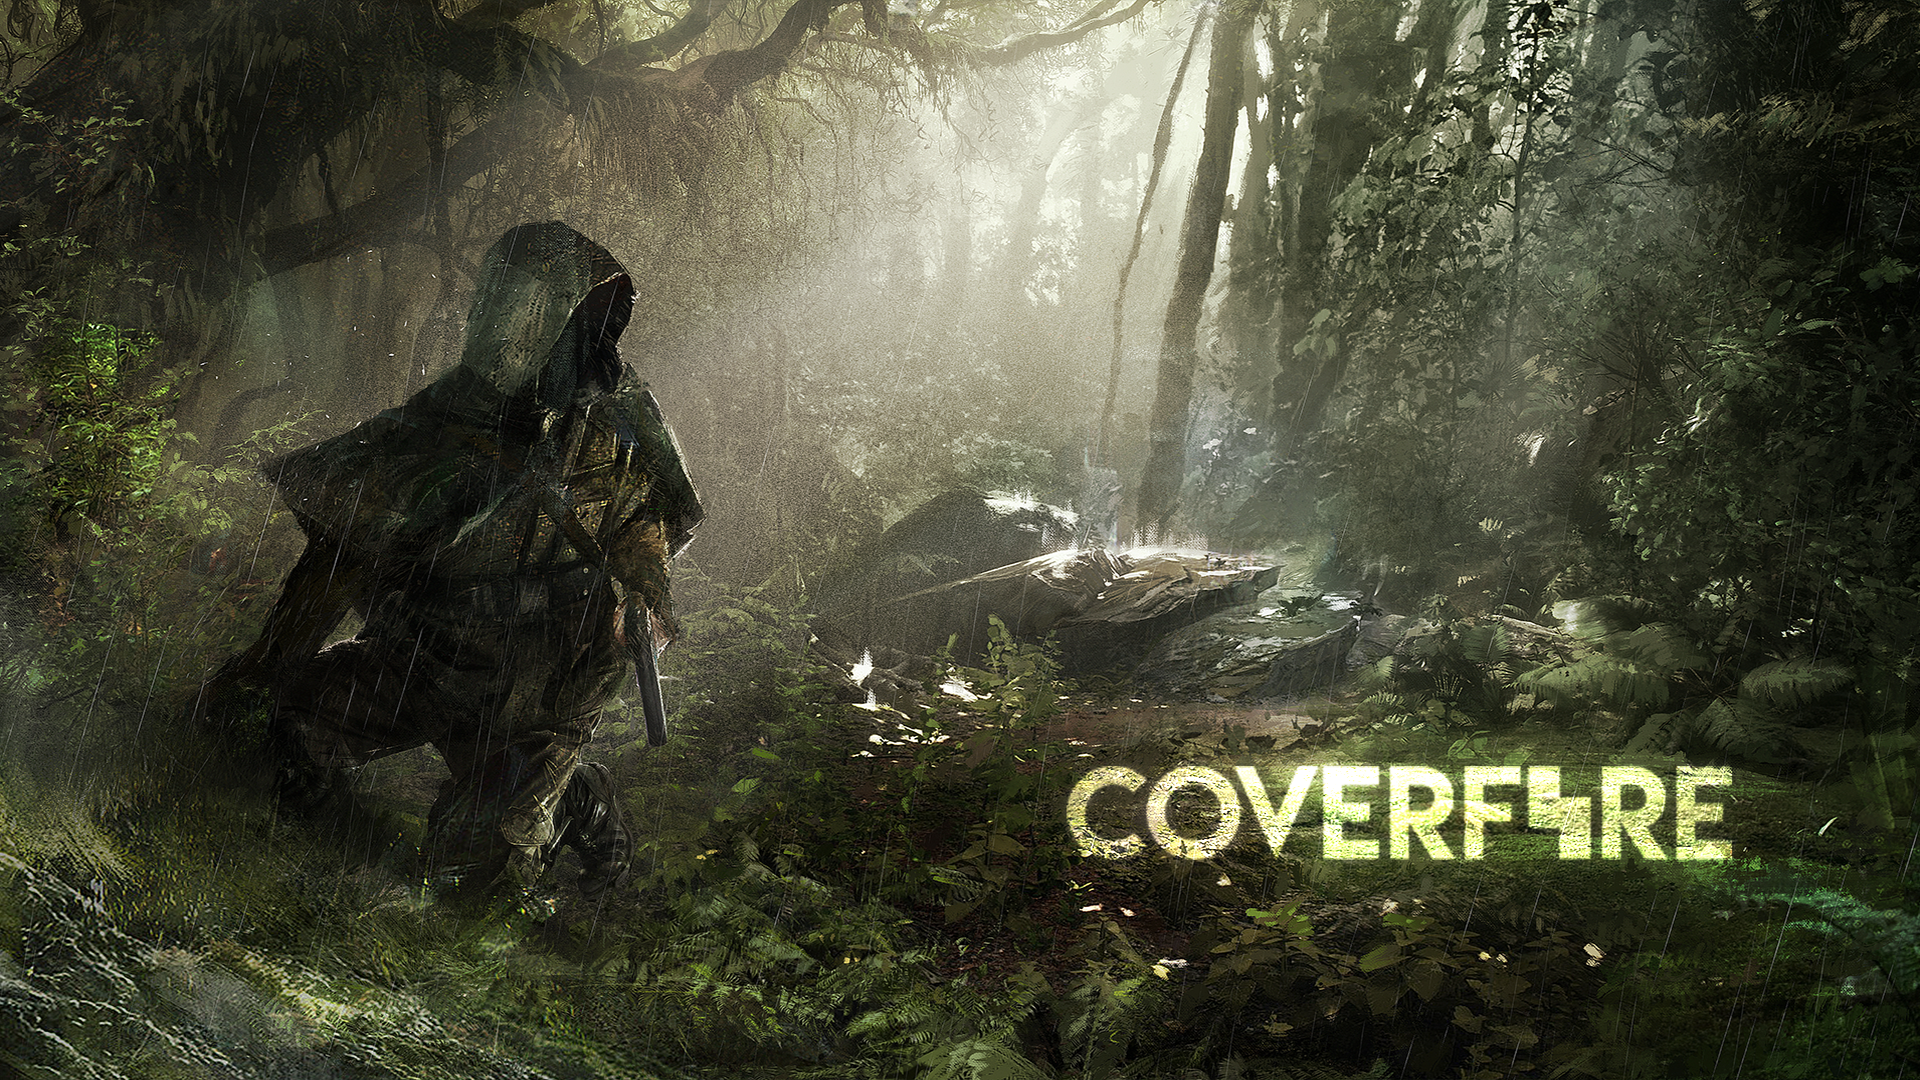 Cover Fire Mod Apk v1.10.6  (Unlimited Money) Latest Version Download 1